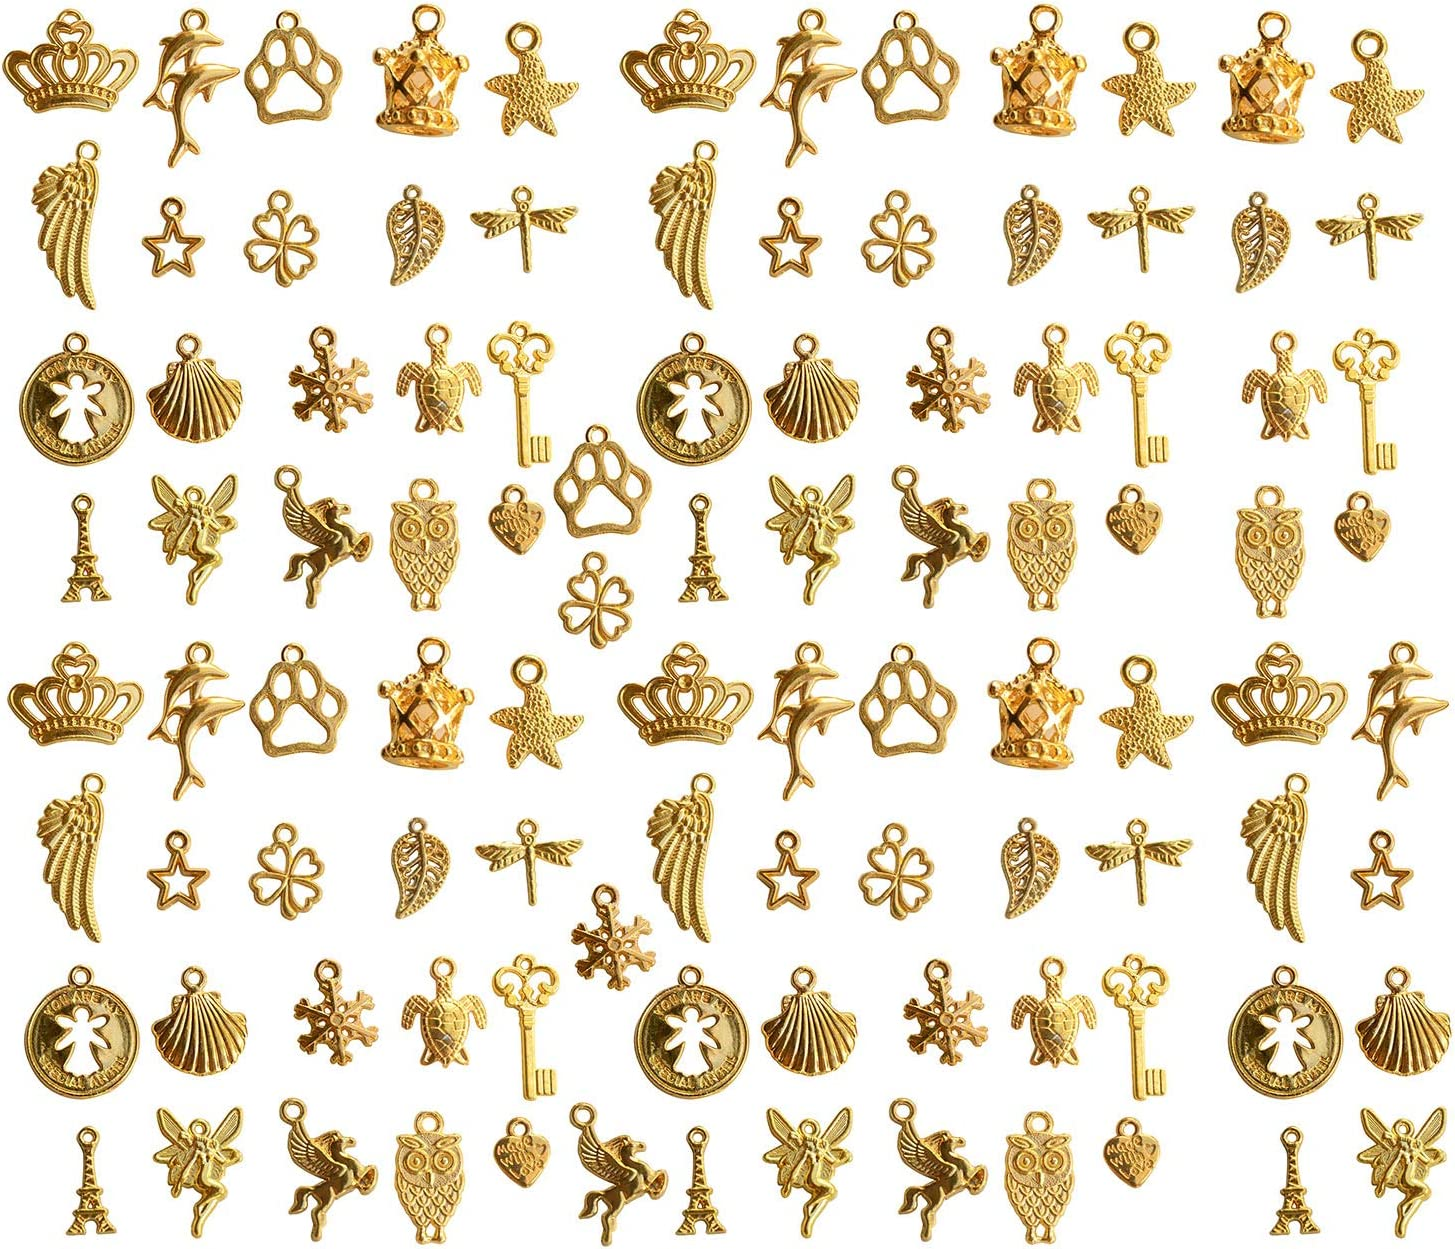 Pack of 100 Mixed Charms Gold DIY Charms Pendant for Crafting, Jewelry Making Accessory (100pcs Mixed 20 styles Gold)